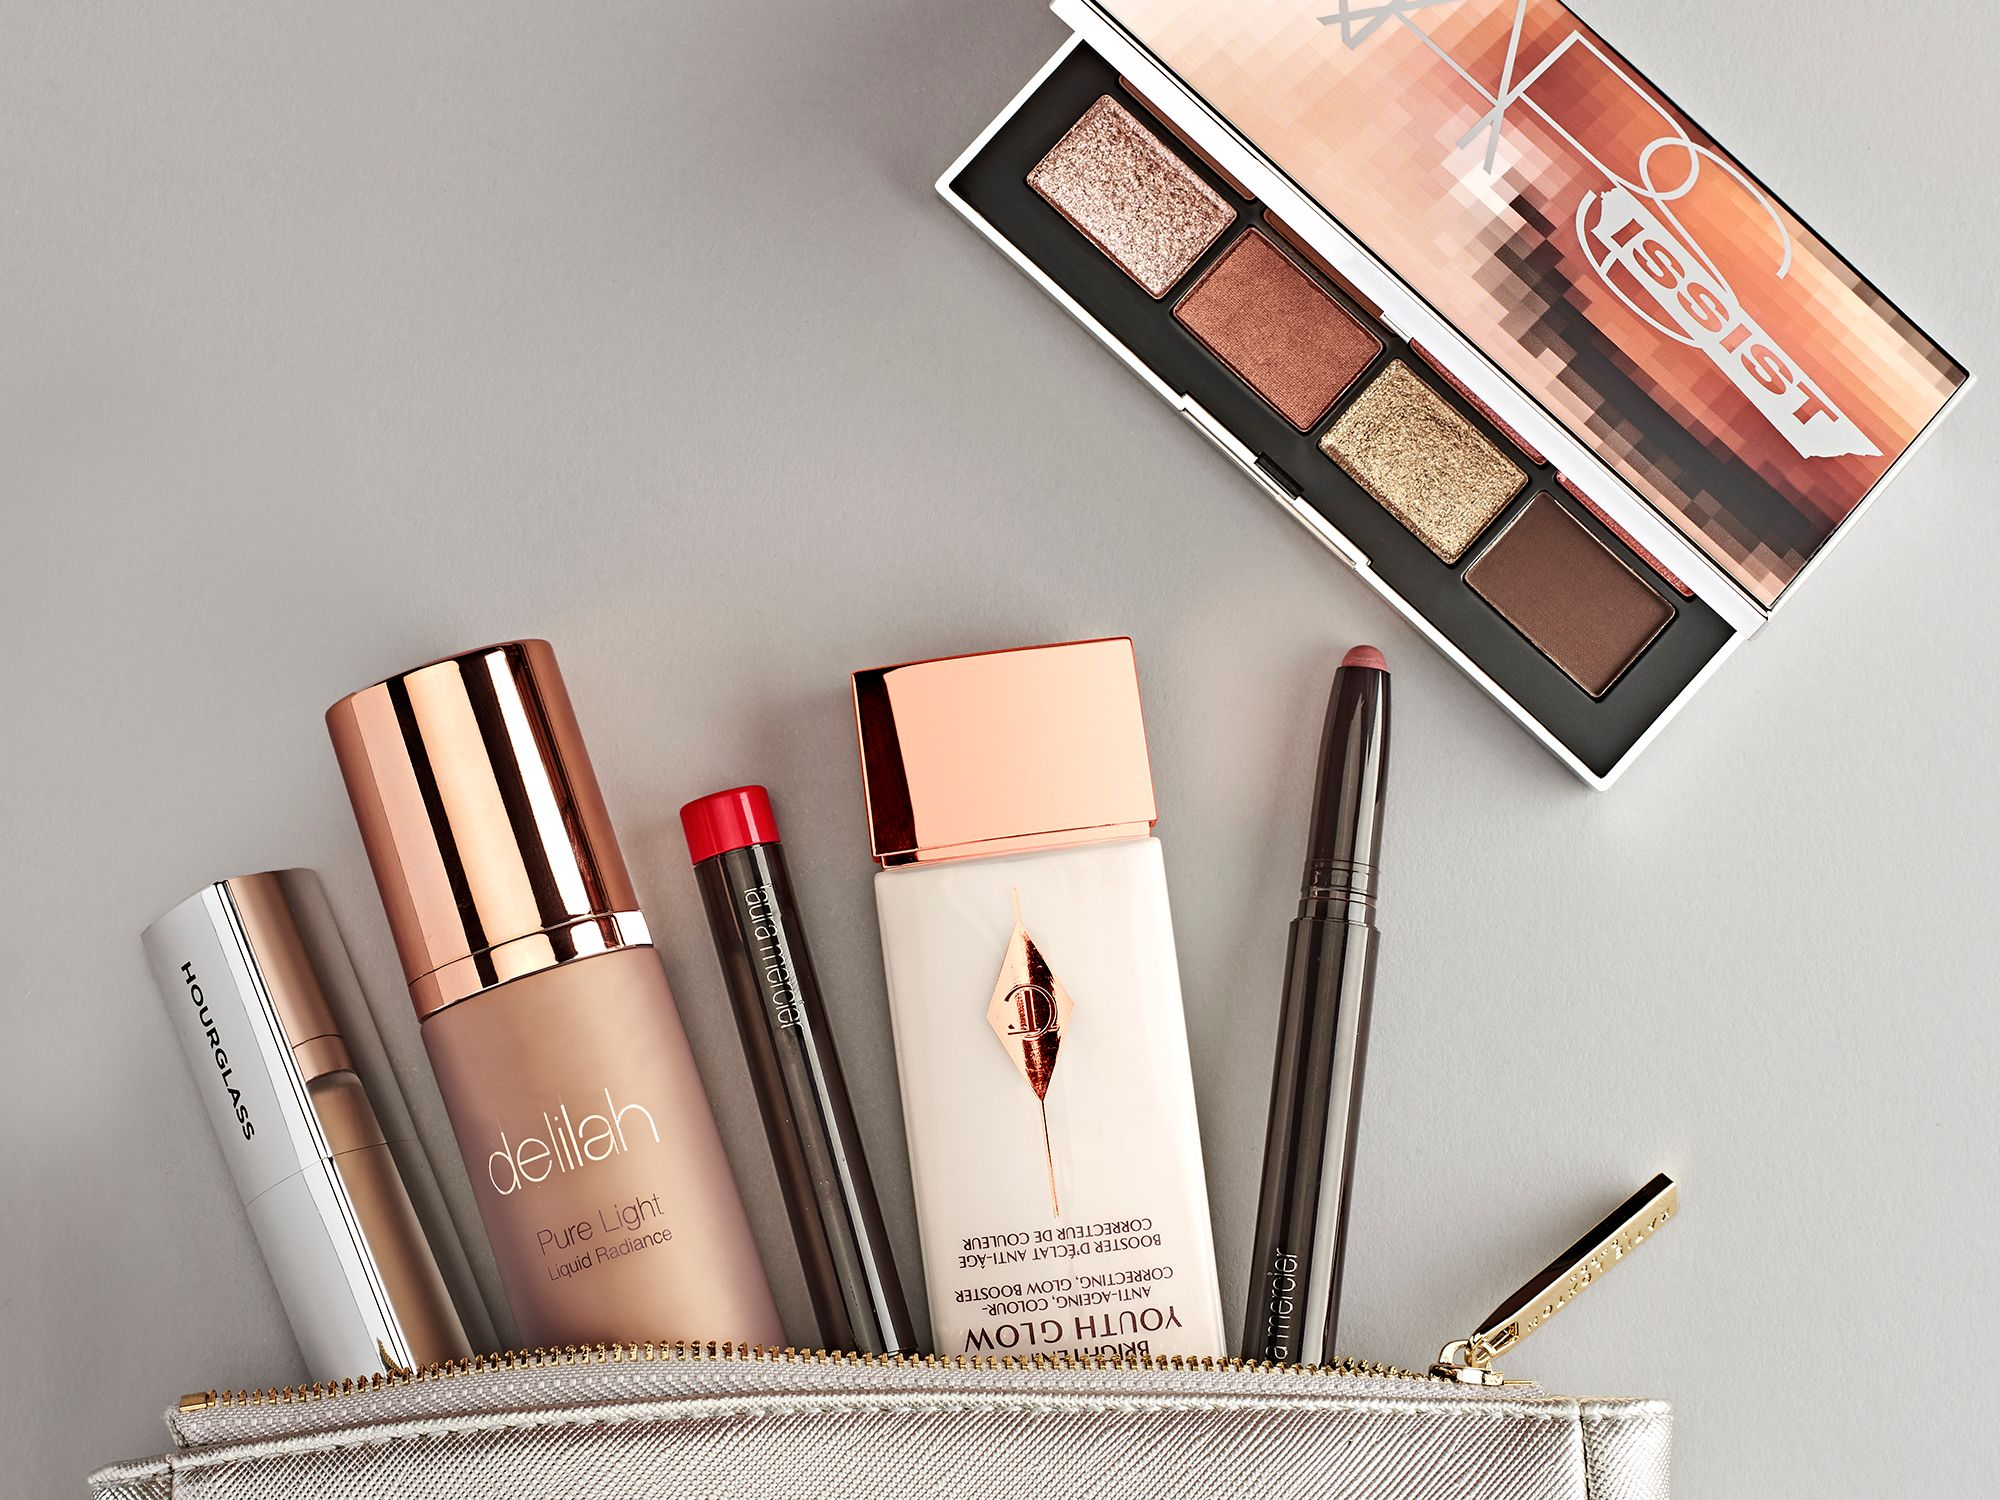 A collection of Spring beauty products from brands including Charlotte Tilbury, NARS and Laura Mercier, from John Lewis